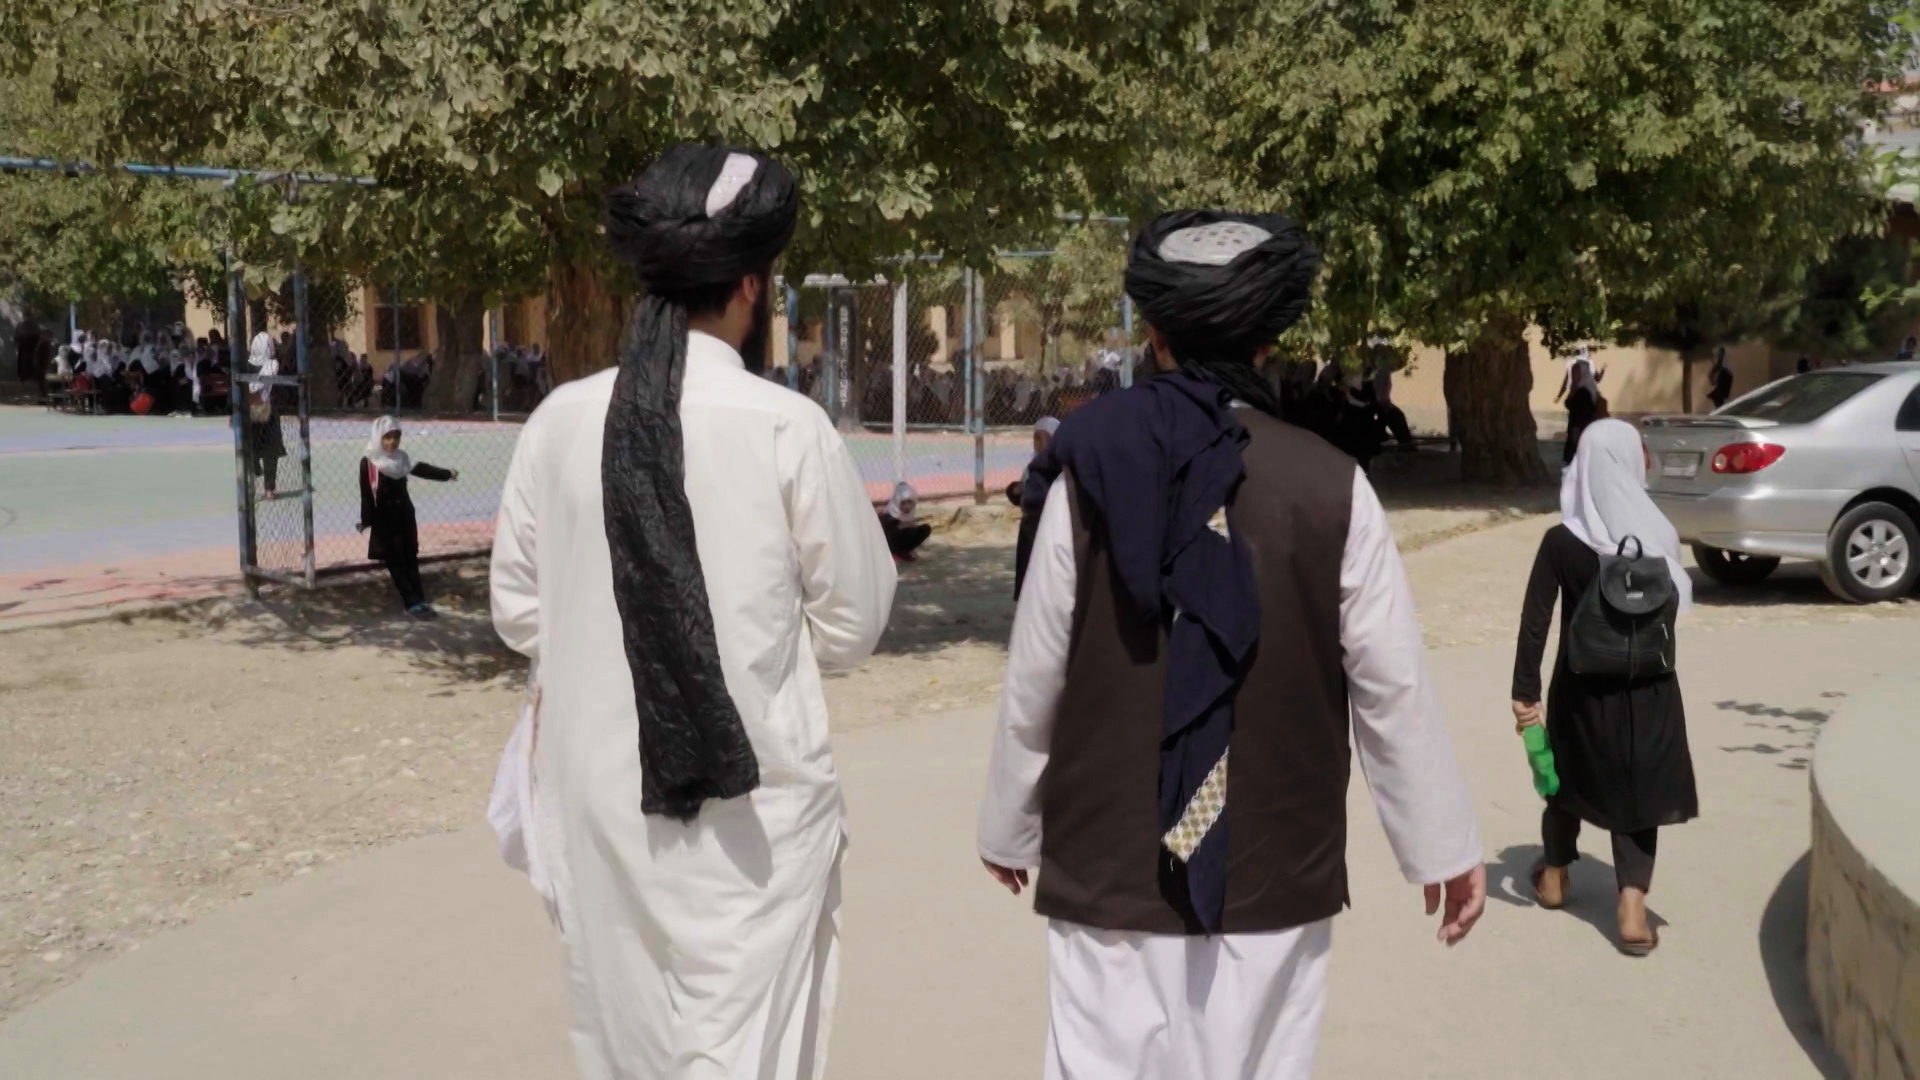 The Schoolgirls and the Taliban